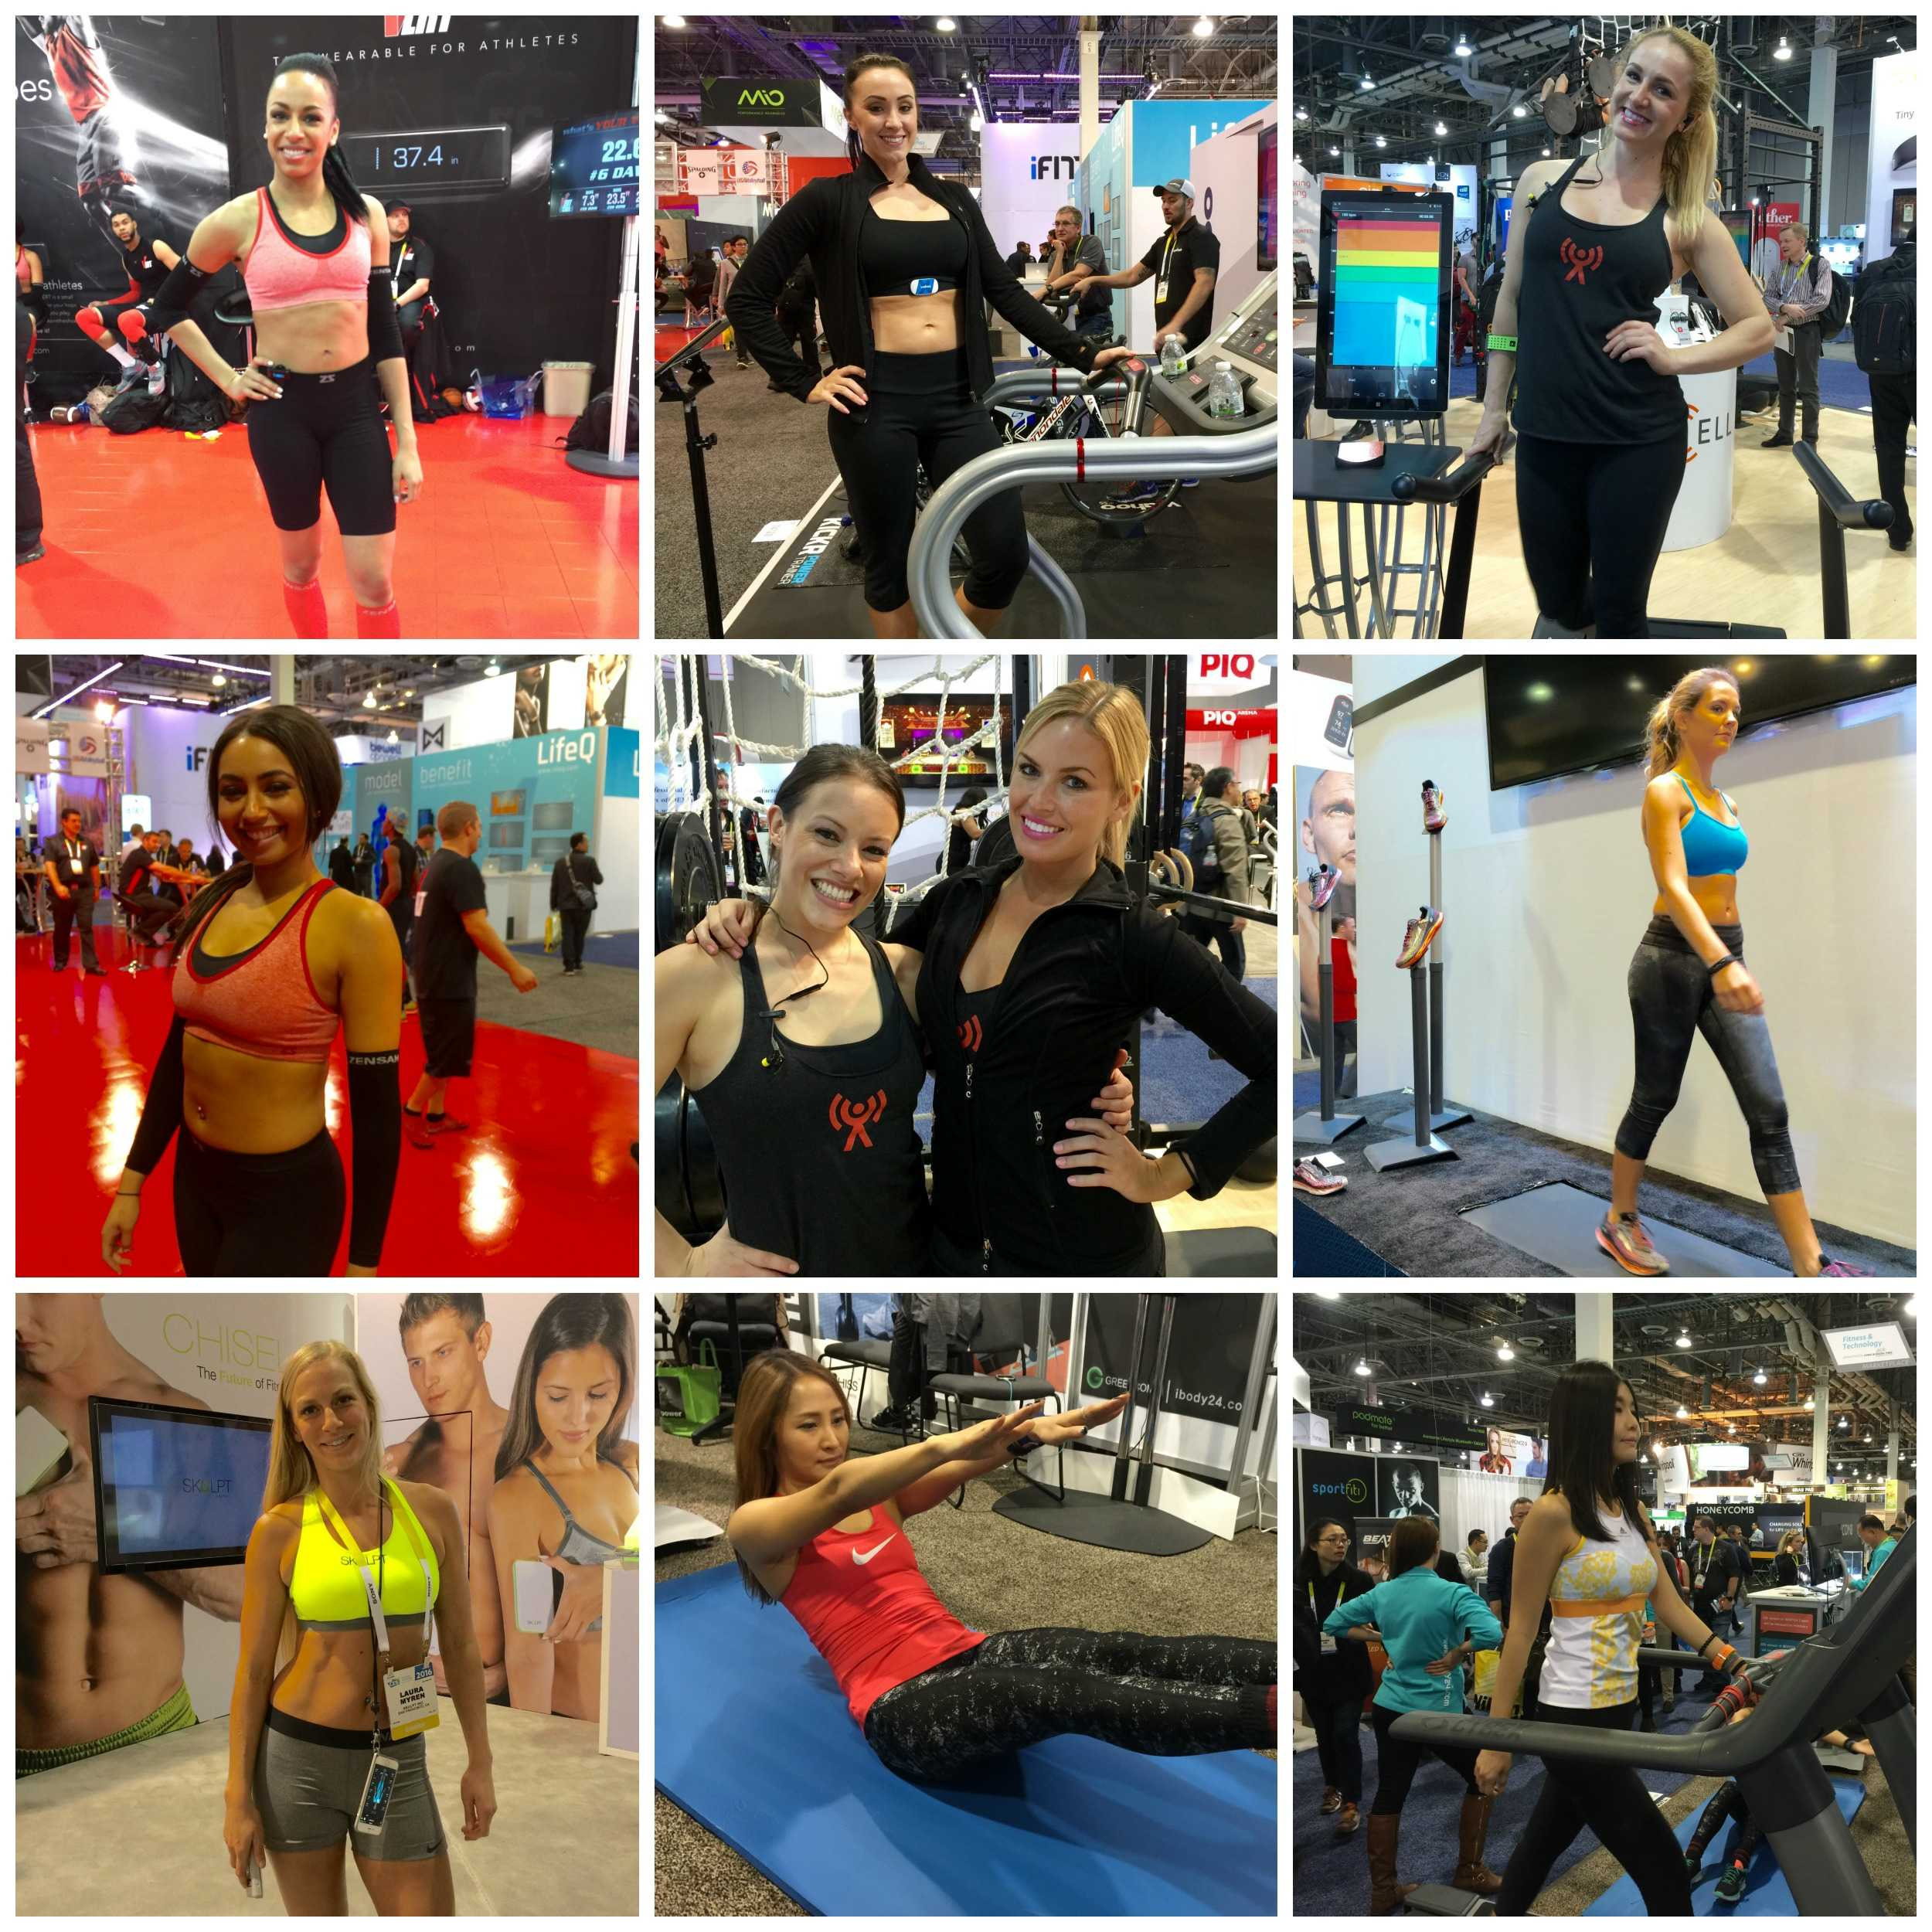 There were quite a lot of fitness models at CES this year wearing sports bras instead of pasties.